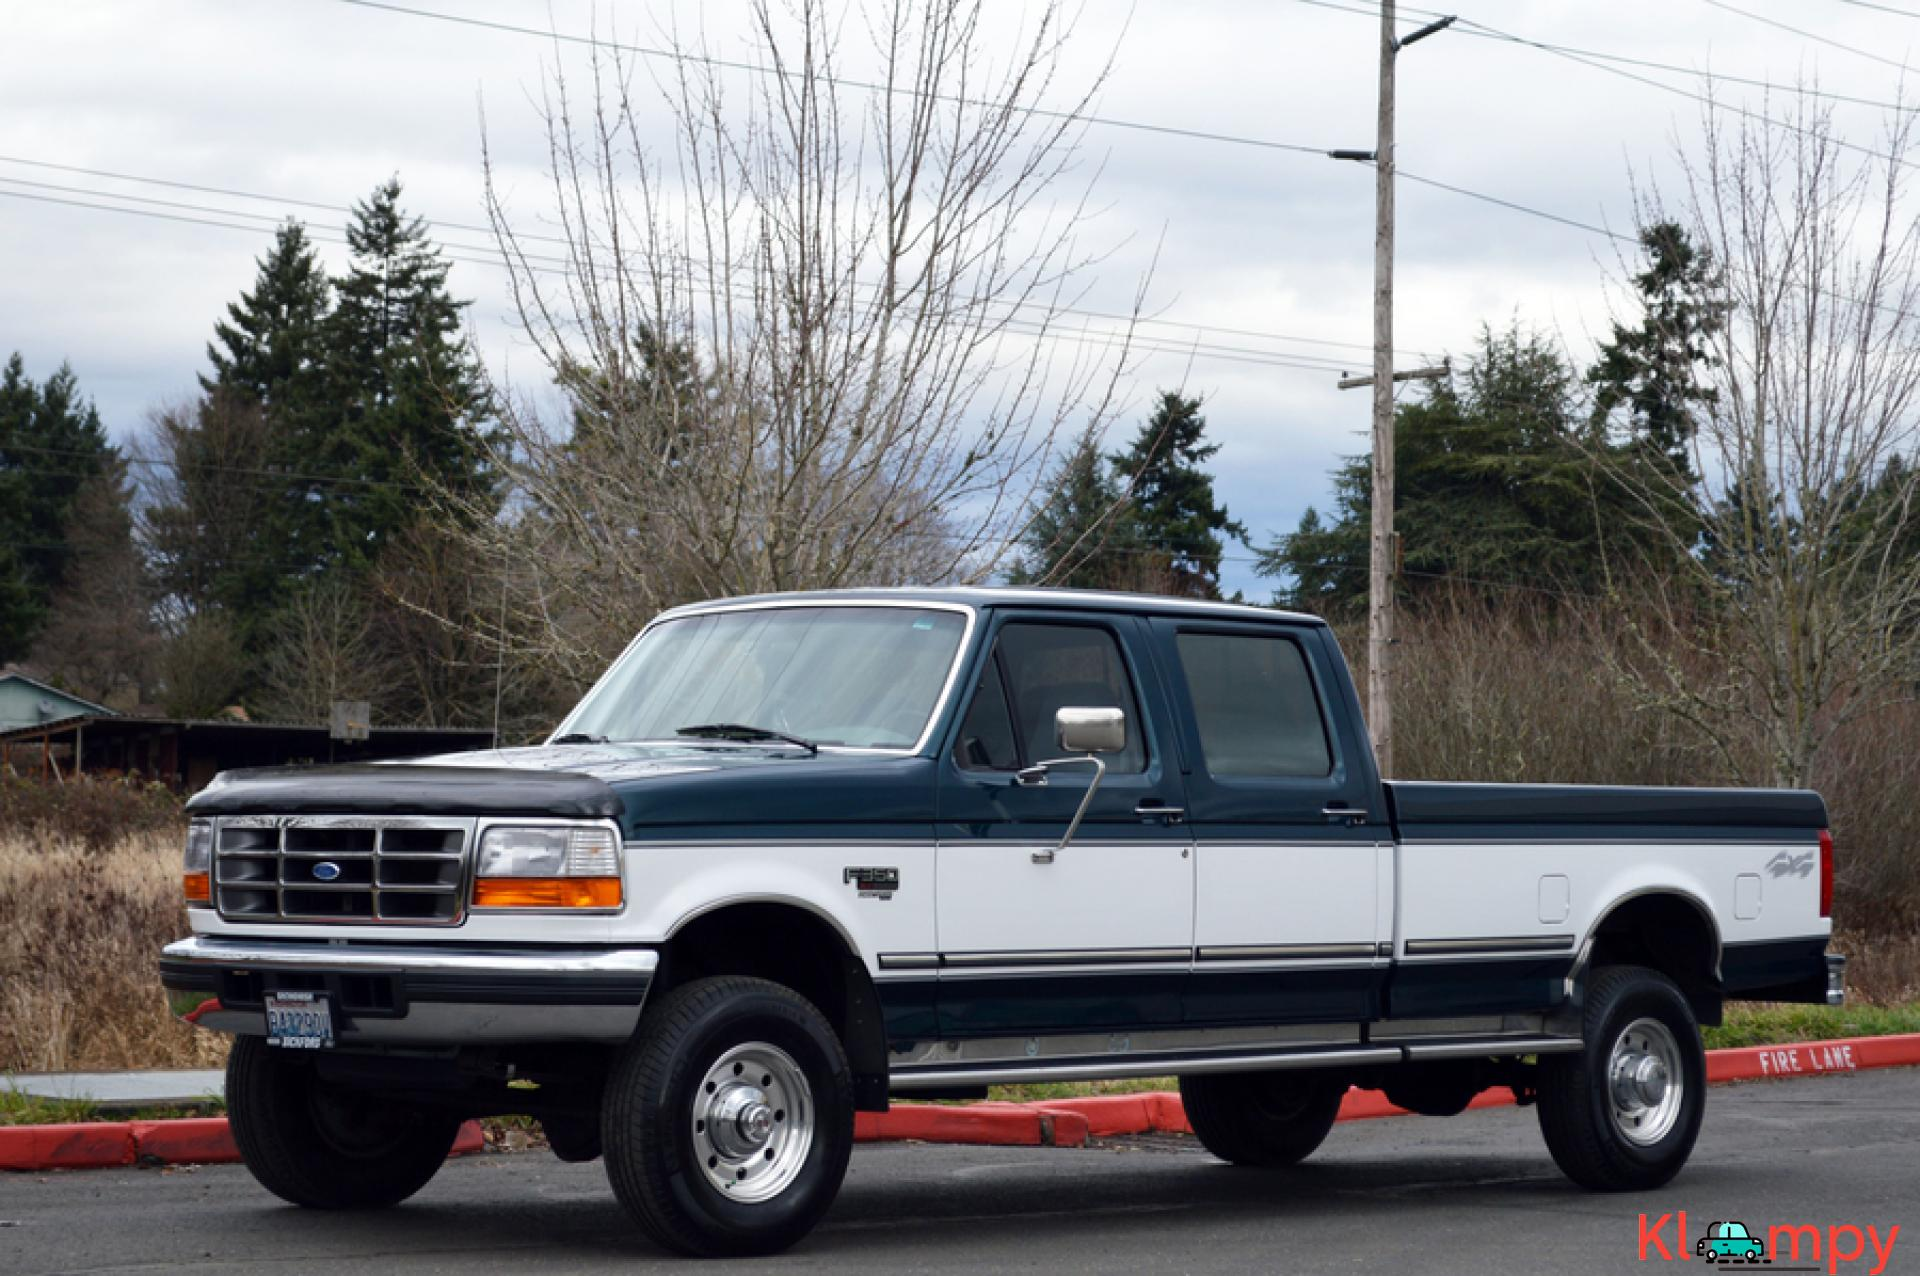 1997 FORD F-350 CREW CAB LONG BED 4WD 7.3L - 11/20